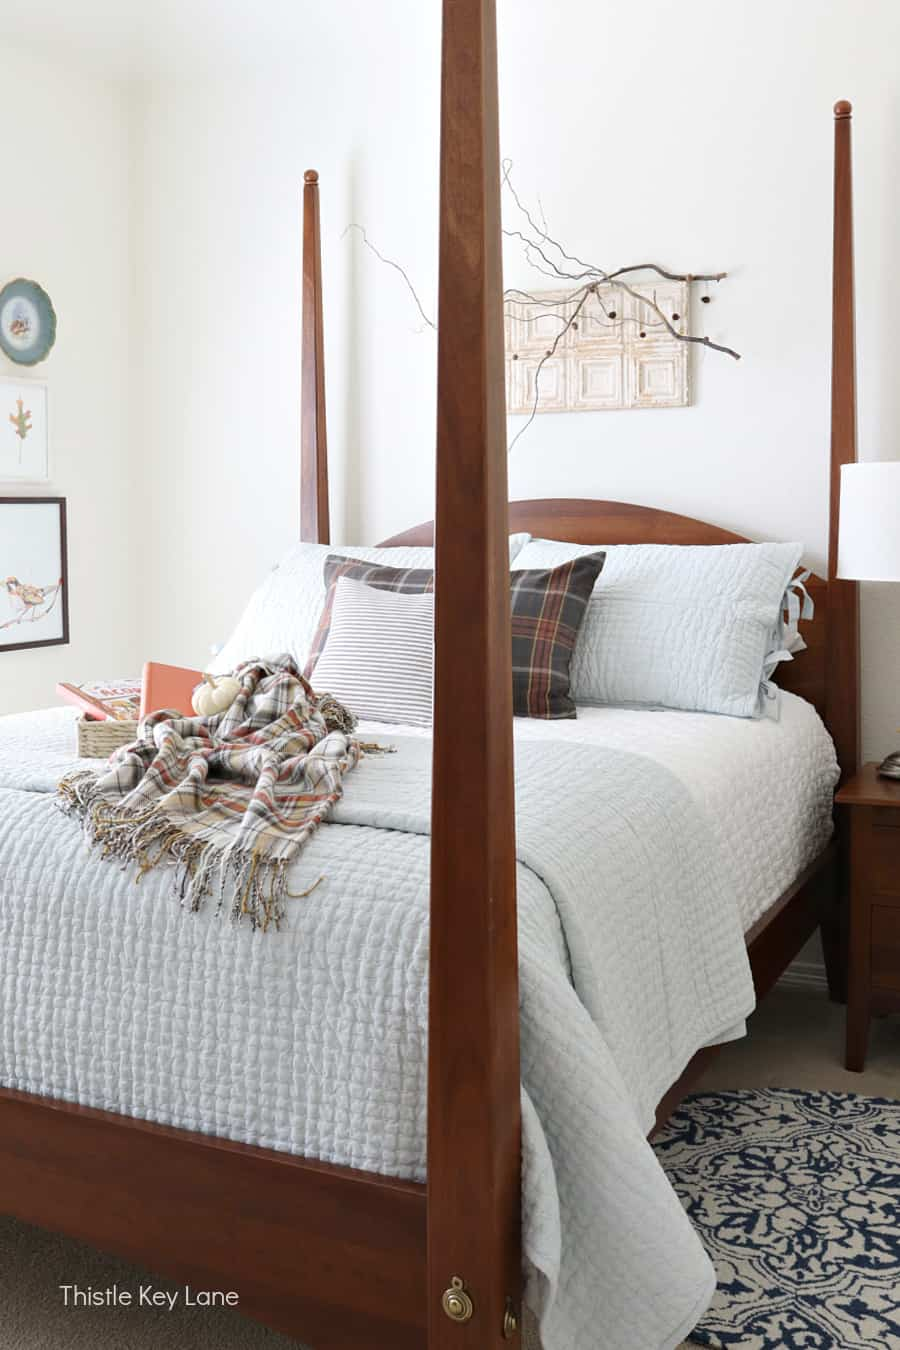 Shaker style bed, light blue bedding, plaid accents. Simple Fall Bedroom Ideas.